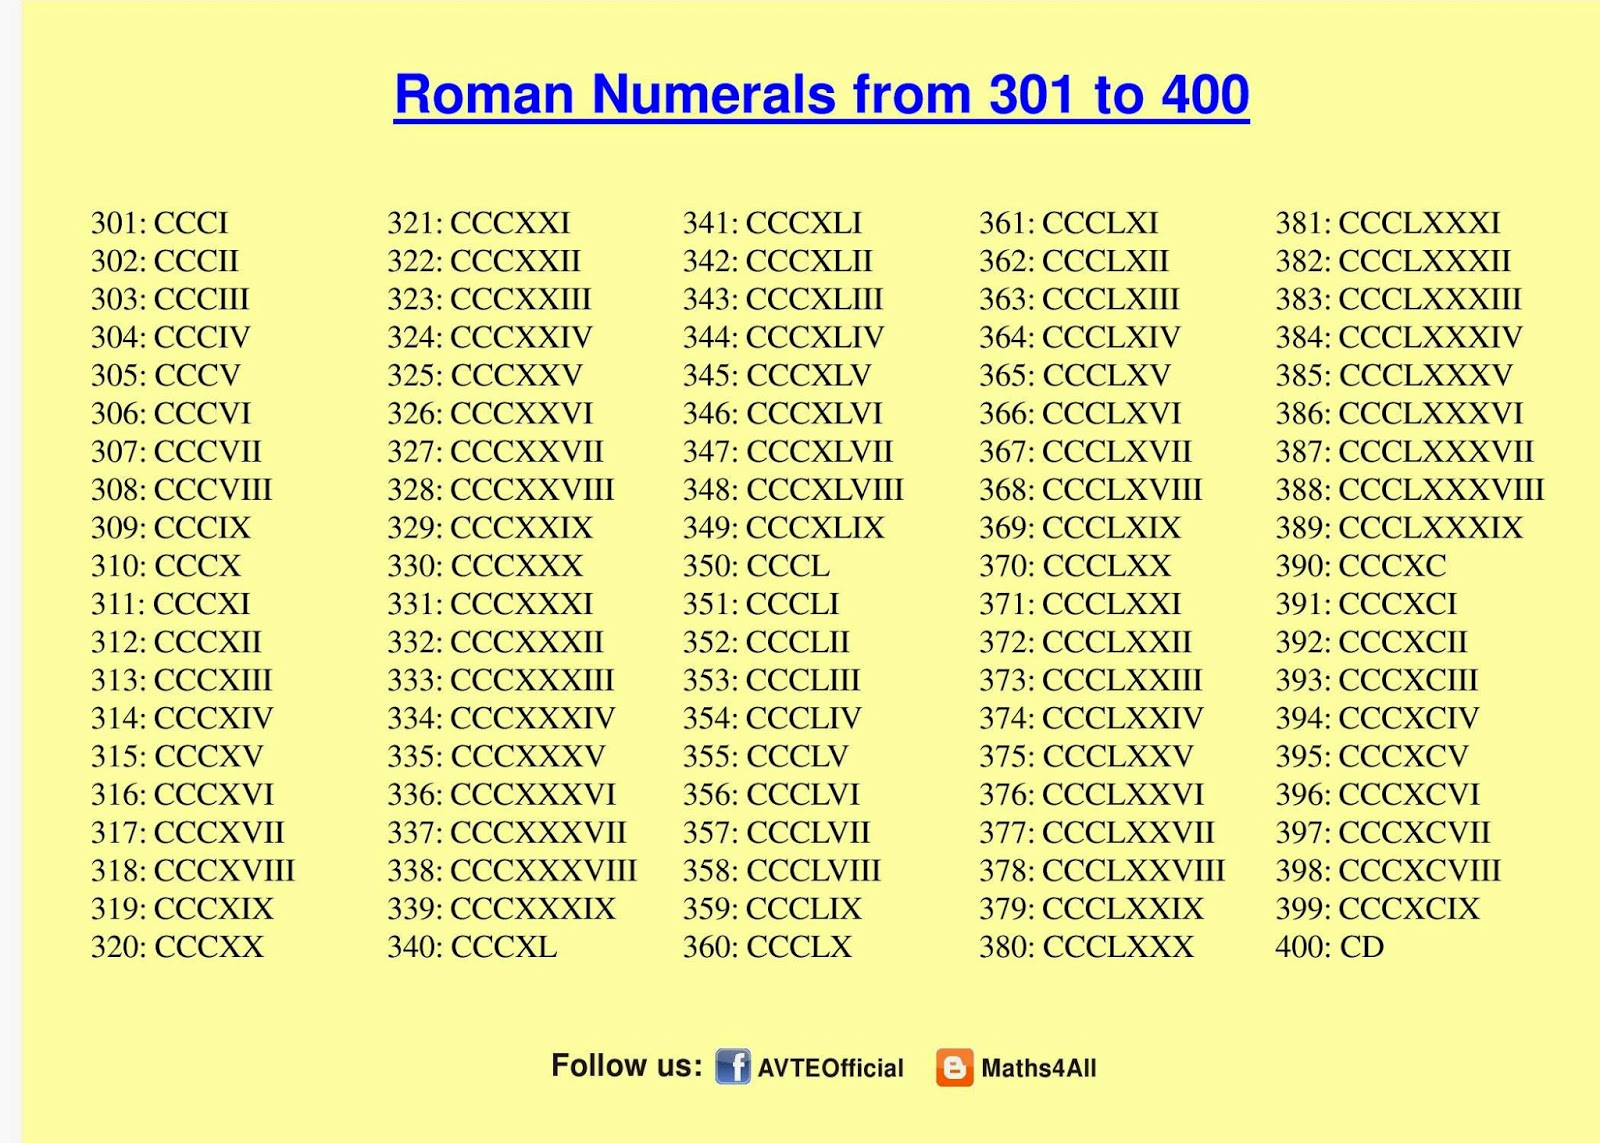 Maths4all: ROMAN NUMERALS 301 TO 400